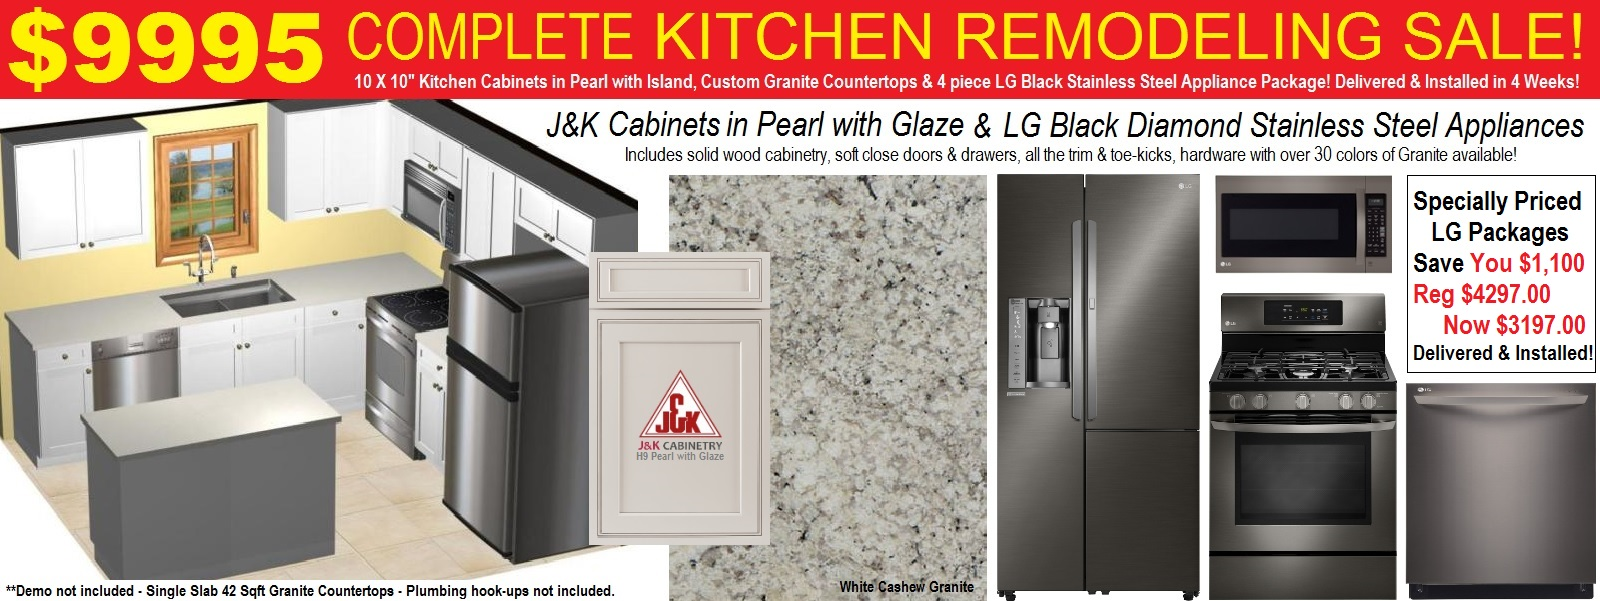 3 day kitchen and bath cabinets stock kitchen cabinets kitchen cabinets countertops Glendale AZ